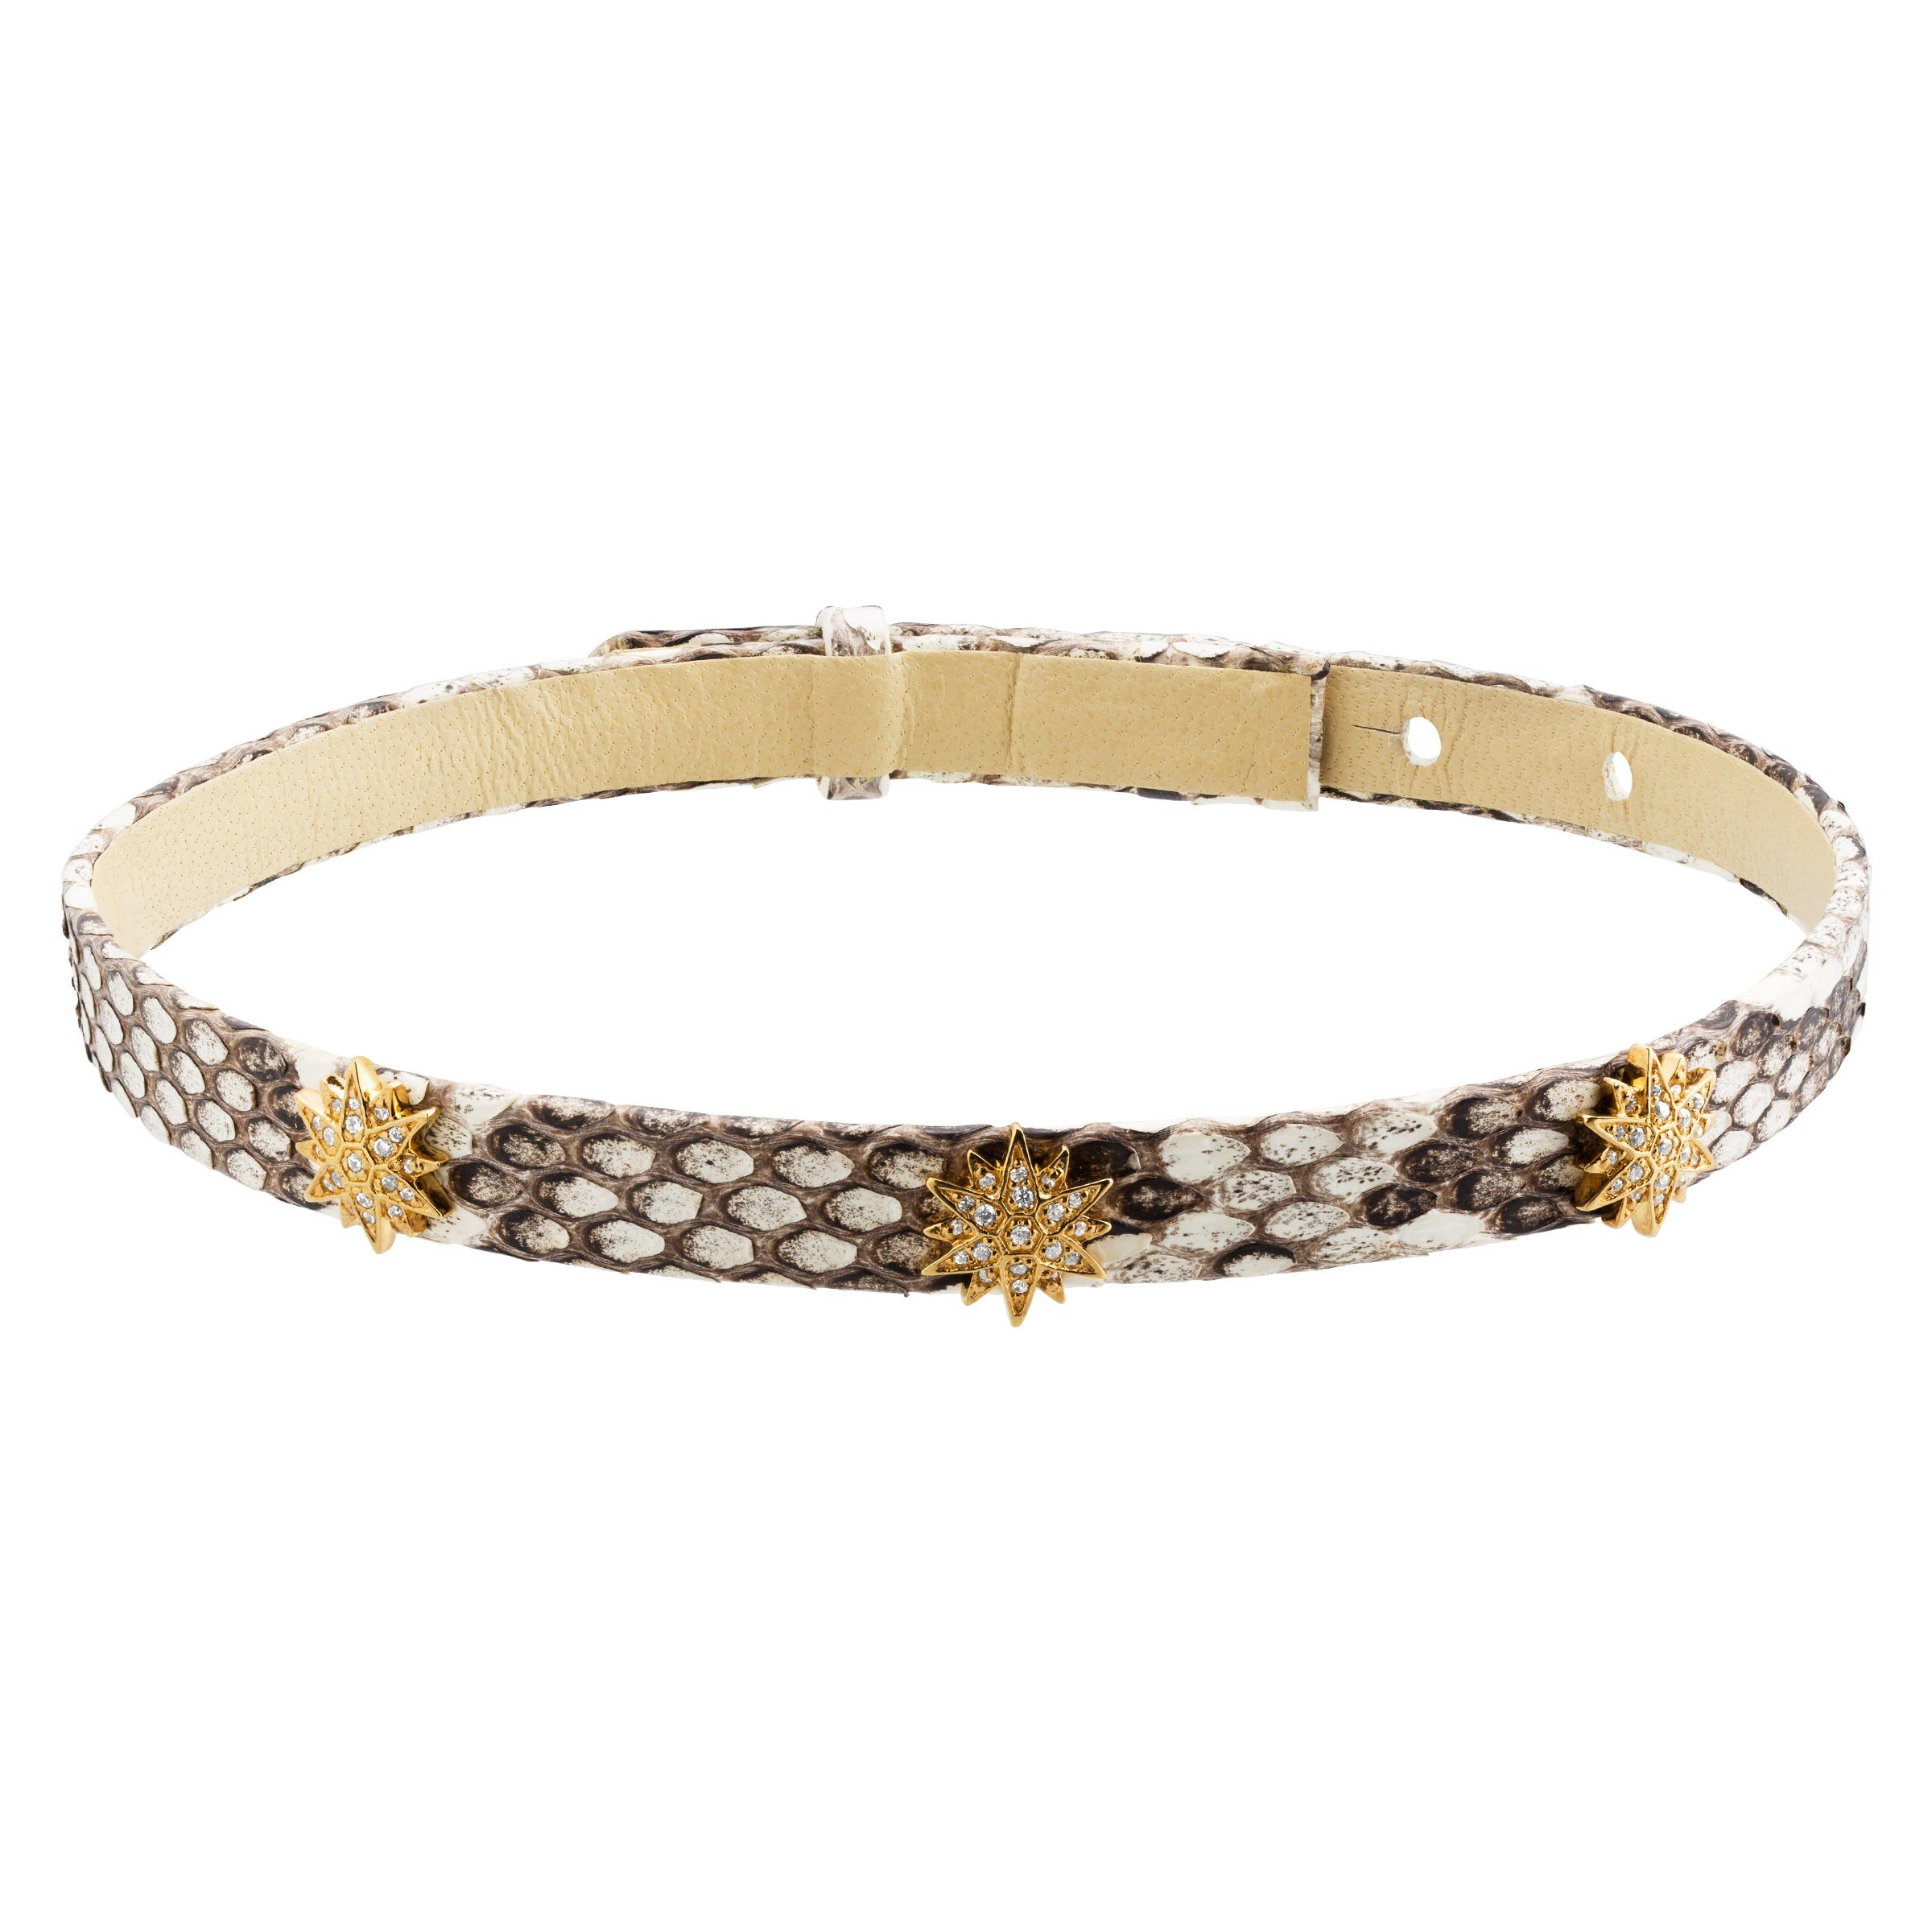 Cristina Sabatini Radiant Choker, Cubic Zirconia, Genuine Tan Python Leather in 18K Gold-Plated Sterling Silver, 15''